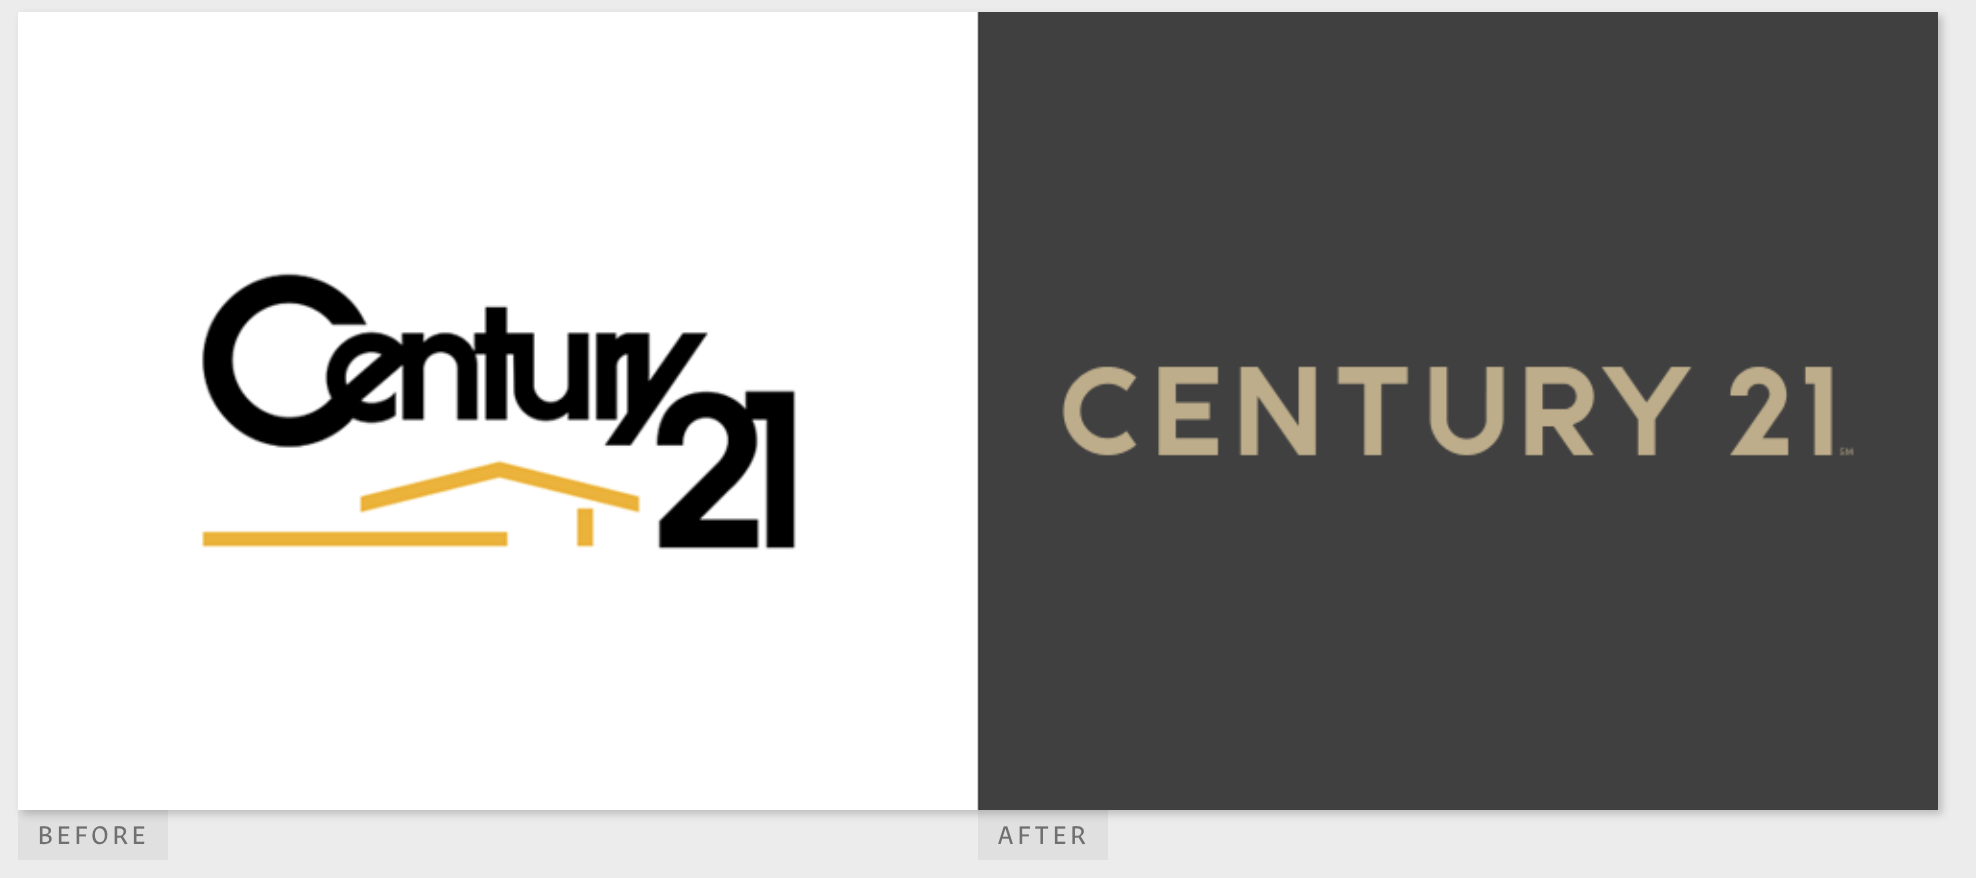 Century 21 Old and New